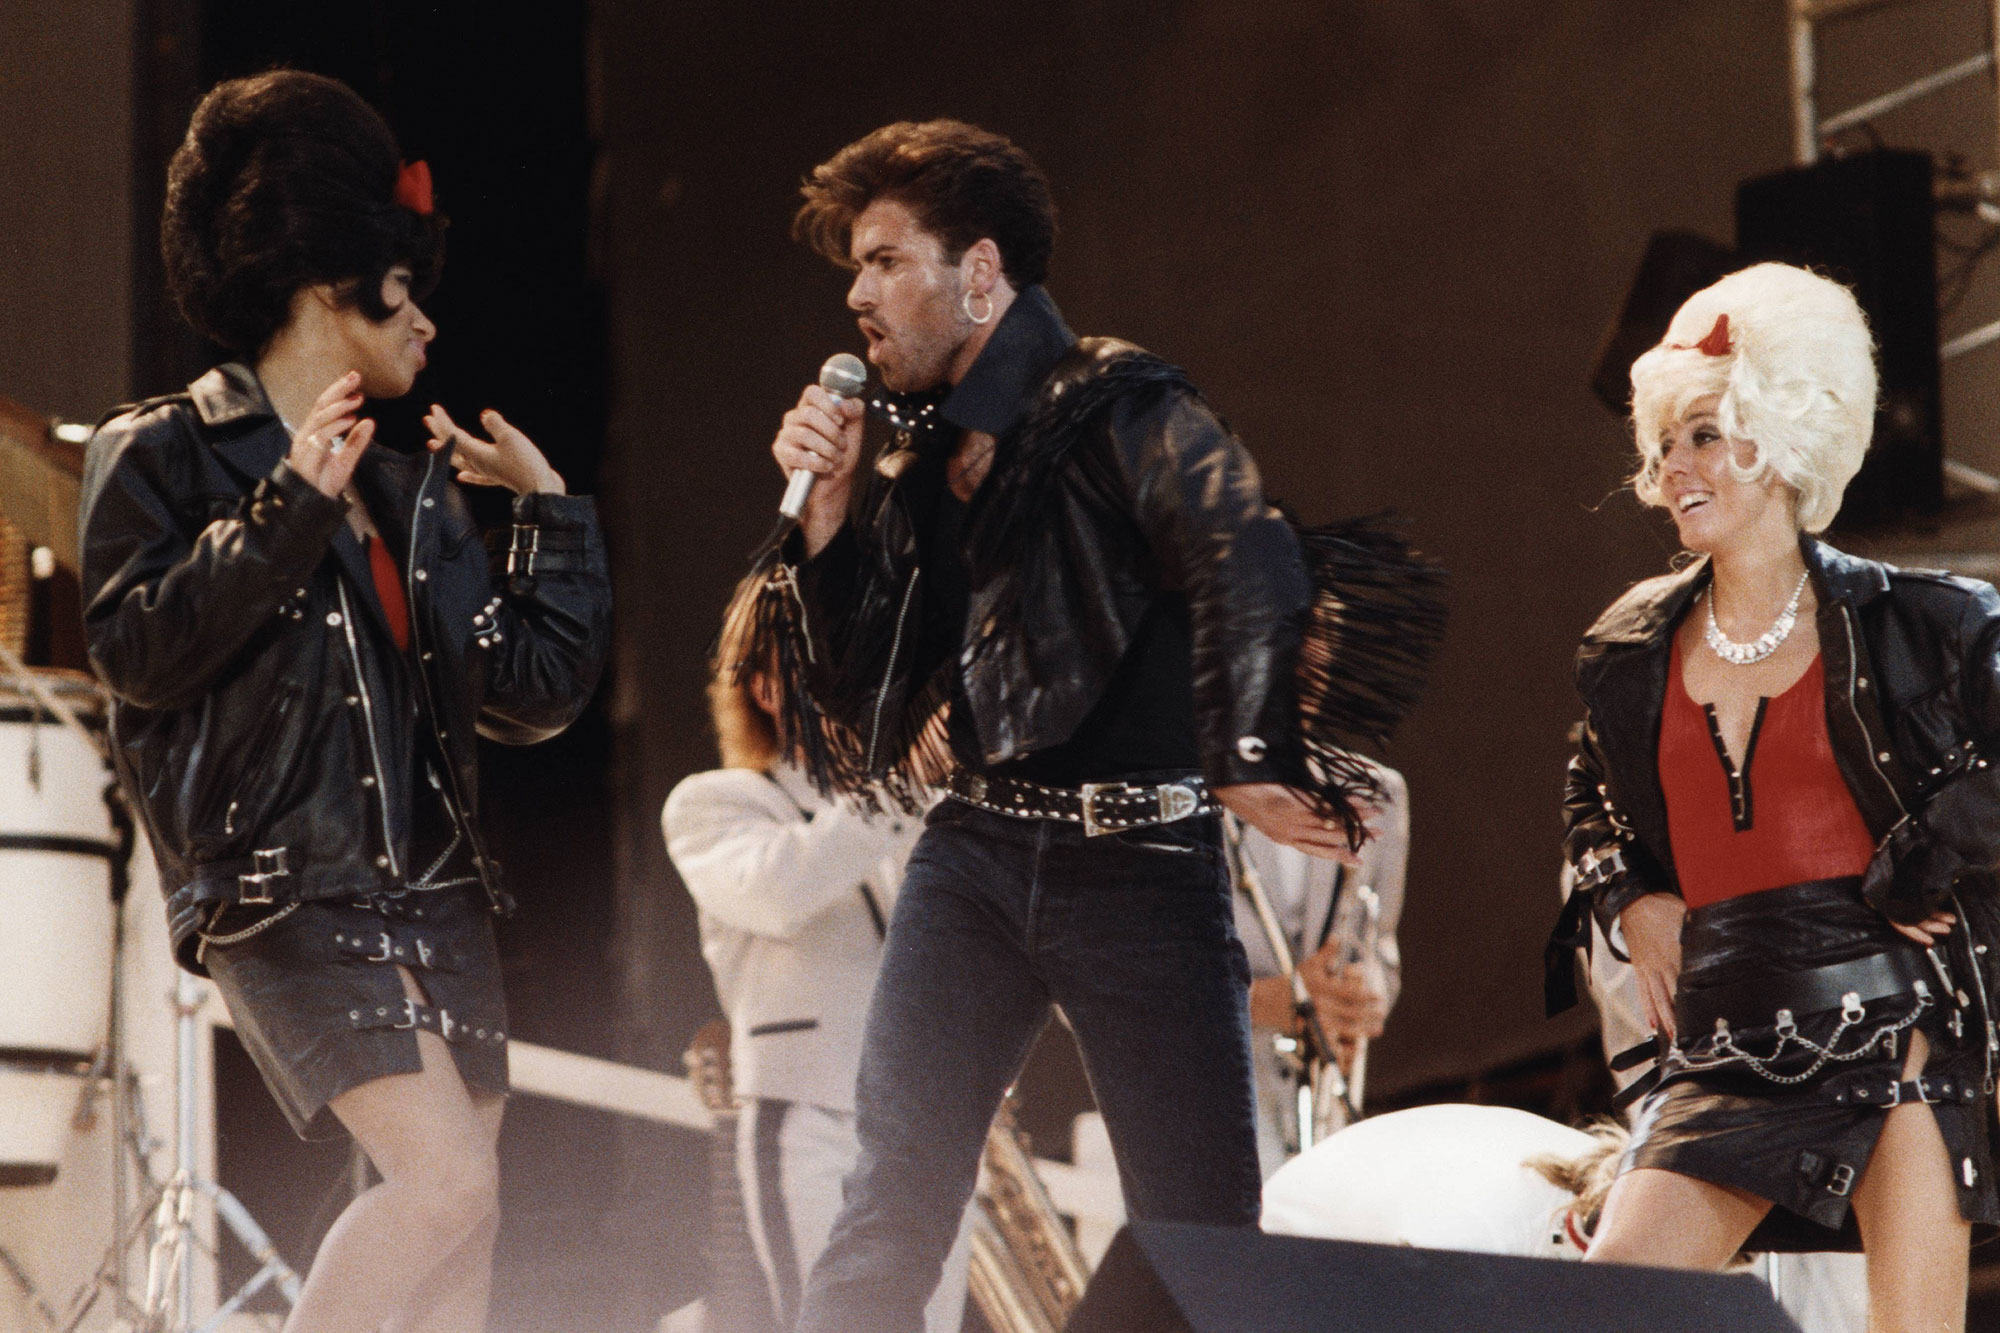 WEMBLEY Photo of PEPSI AND SHIRLIE and George MICHAEL and WHAM!, George Michael w/Pepsi & Shirlie at Wham! Farewell concert